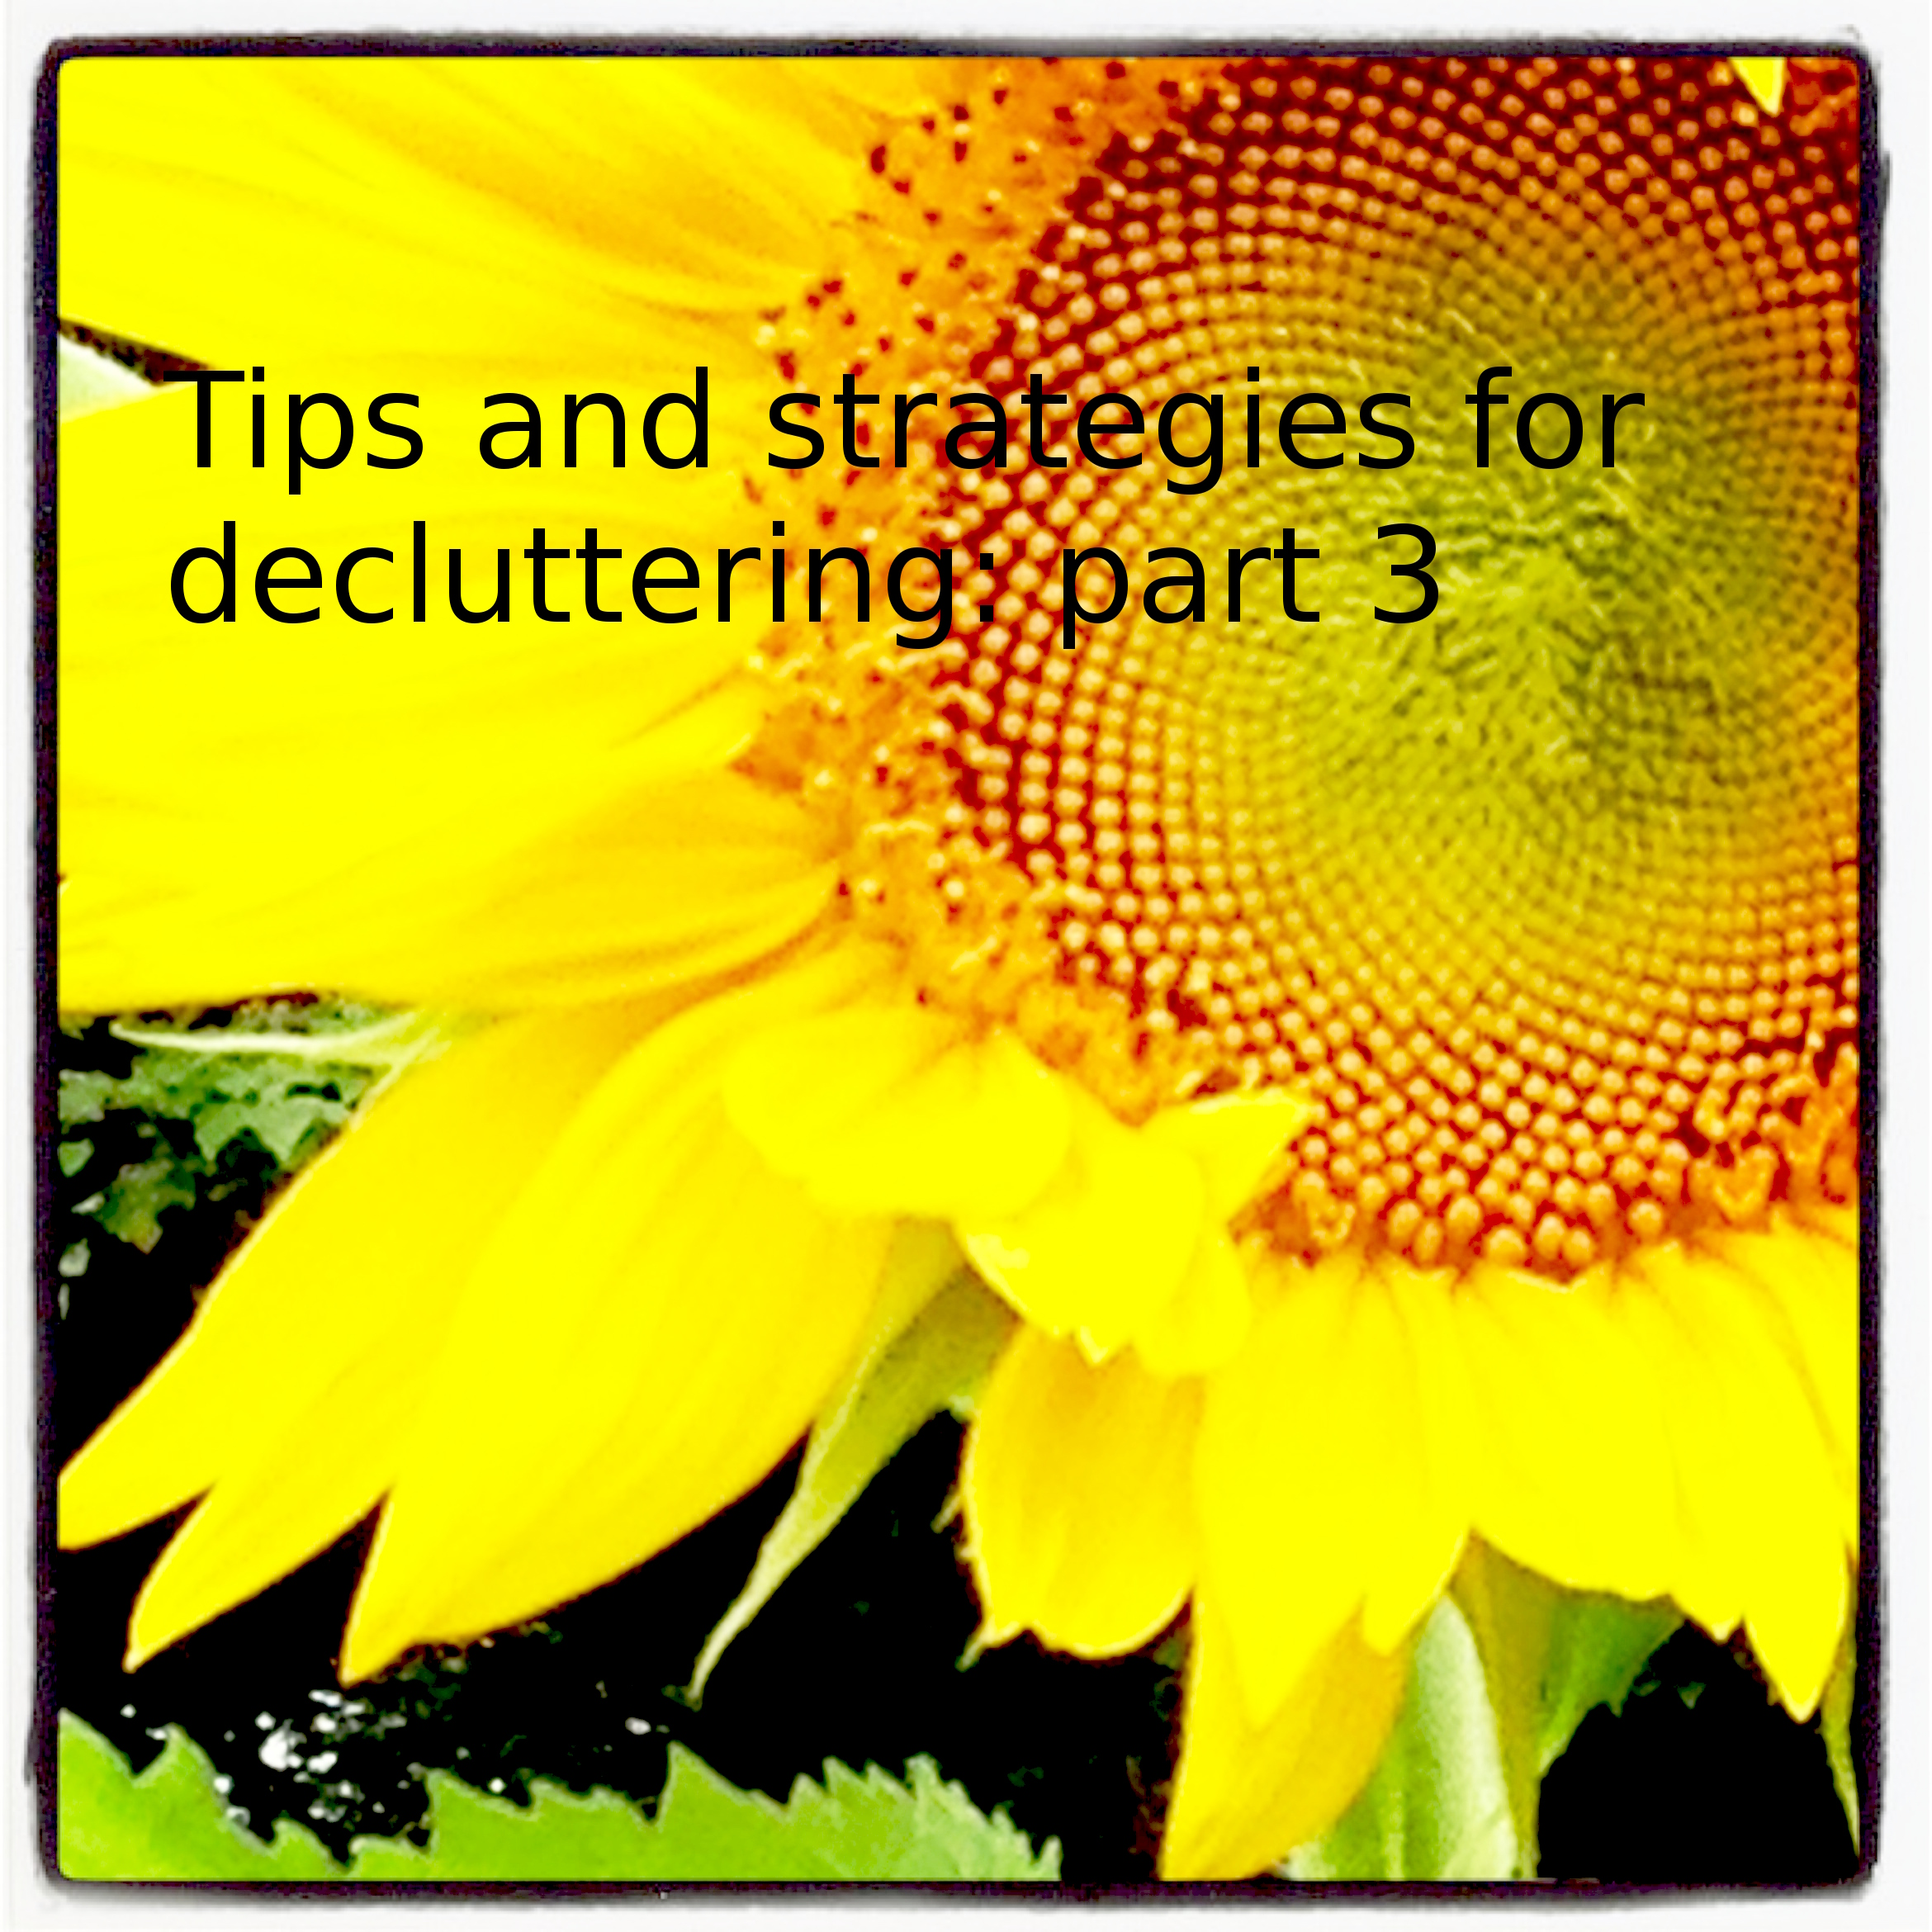 Tips and Strategies for decluttering: part 3